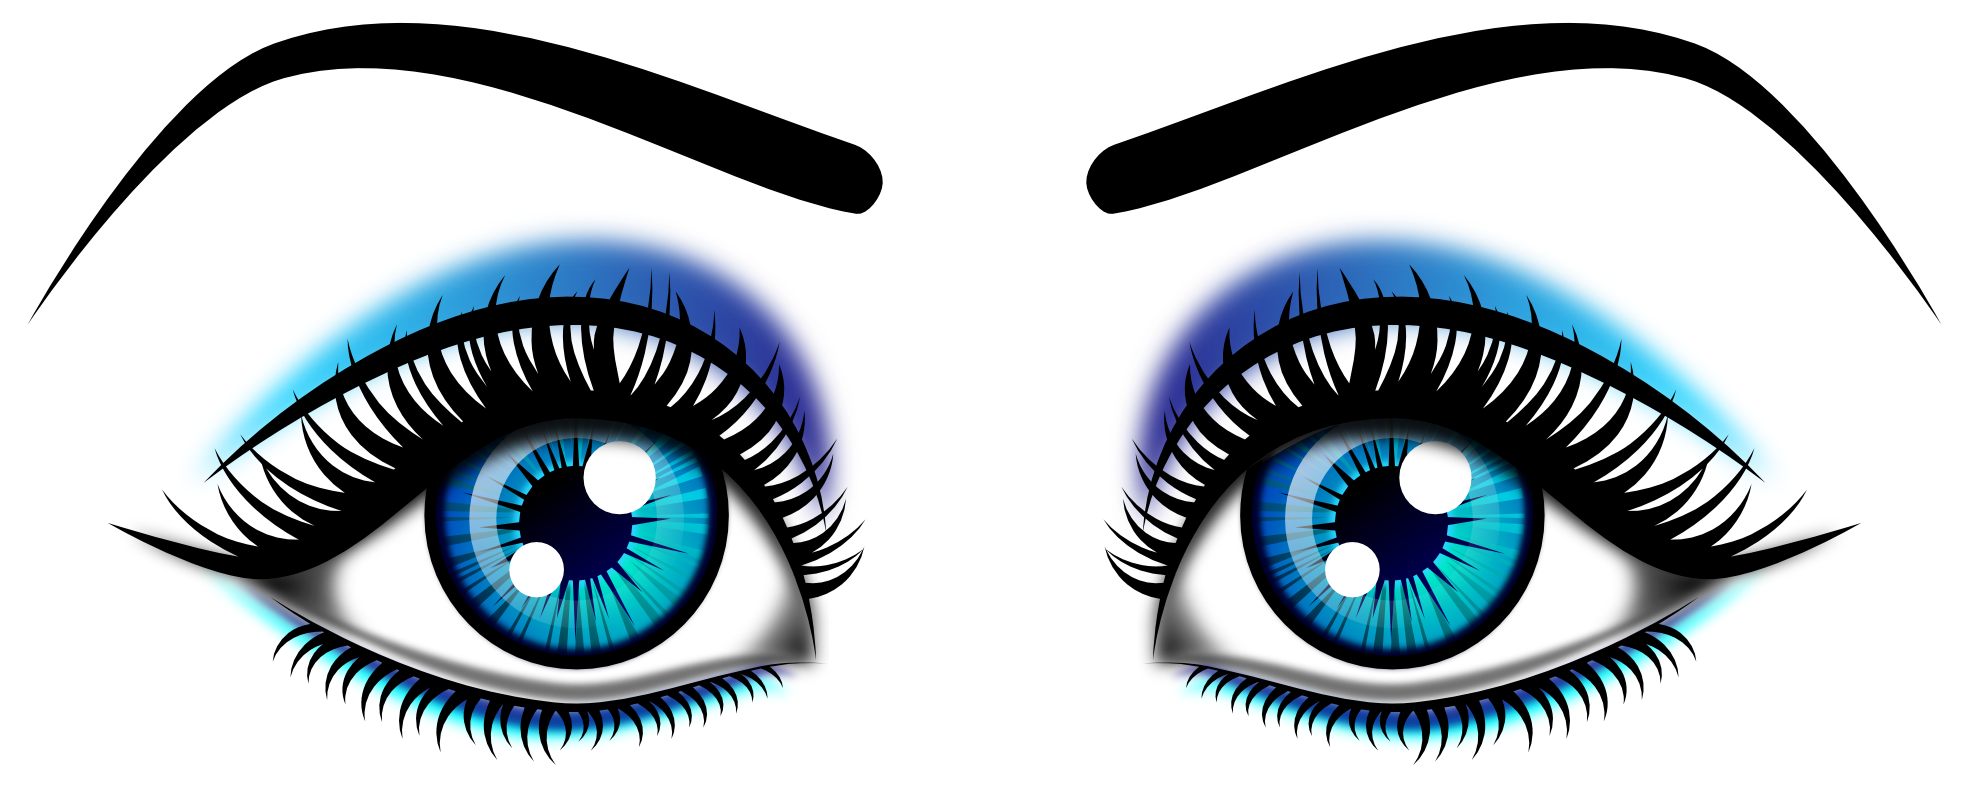 Eyes png images free. Eyeball clipart eye check